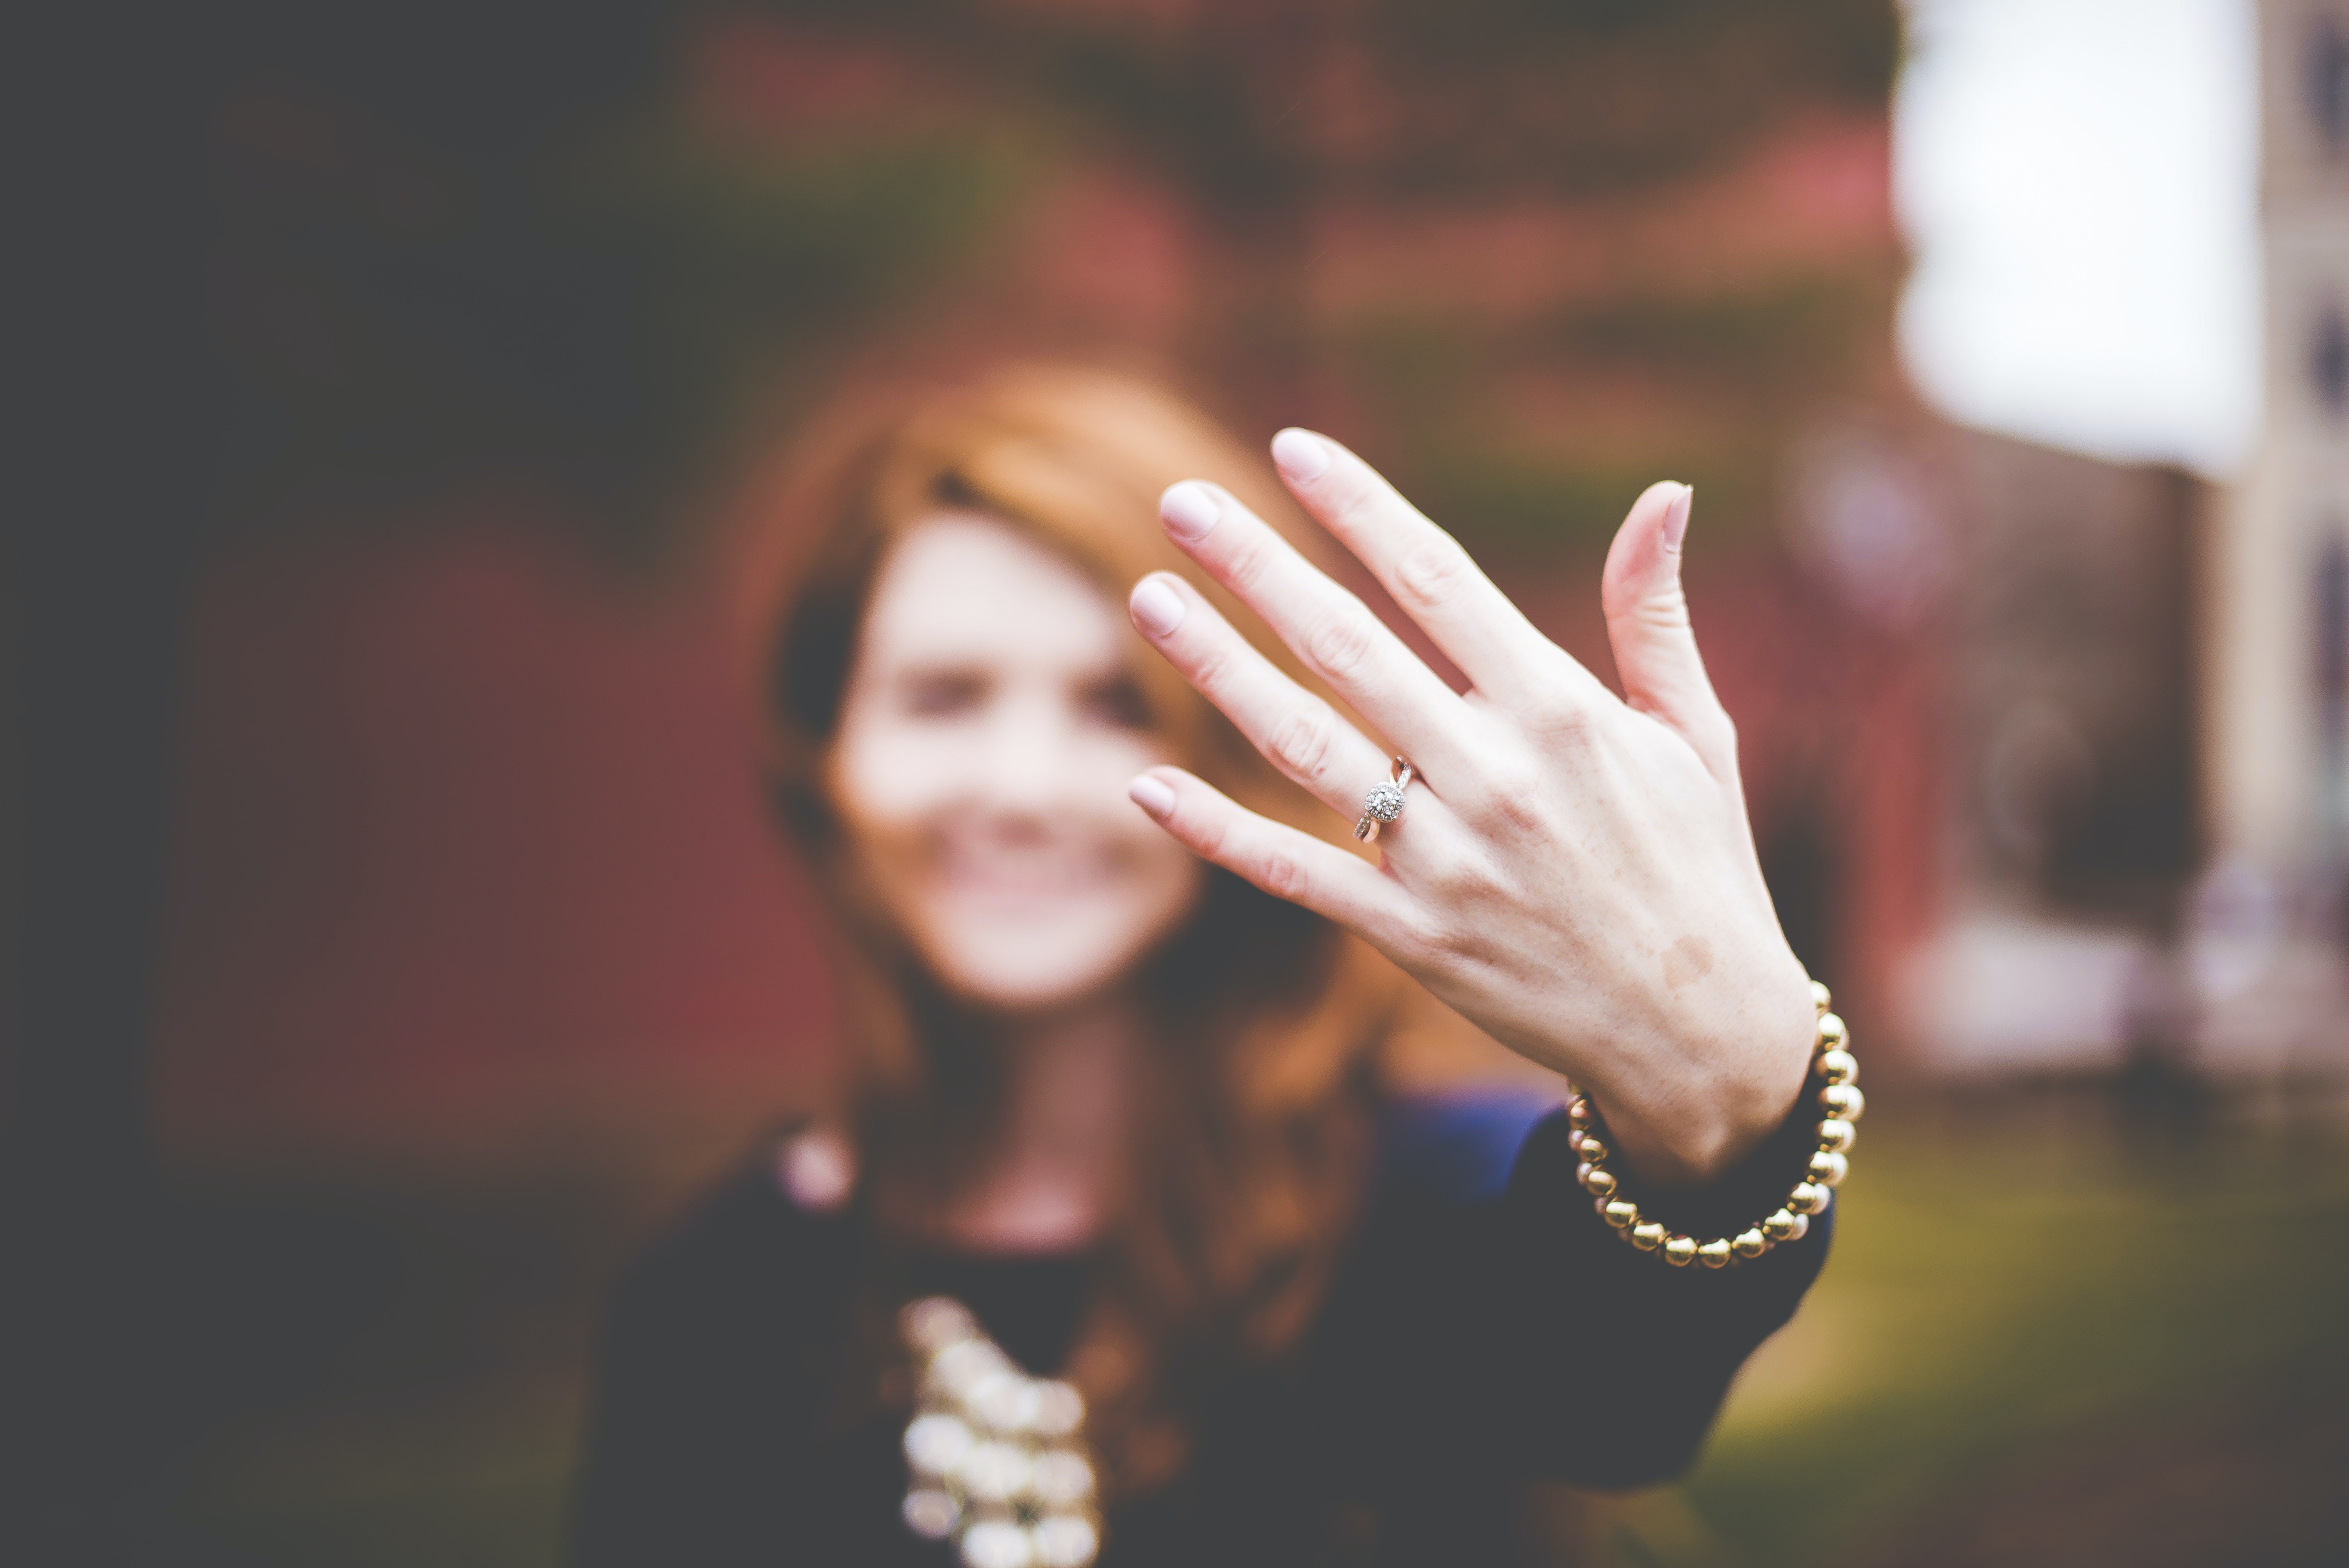 A blurry woman in the background holds up the engagement ring on her hand